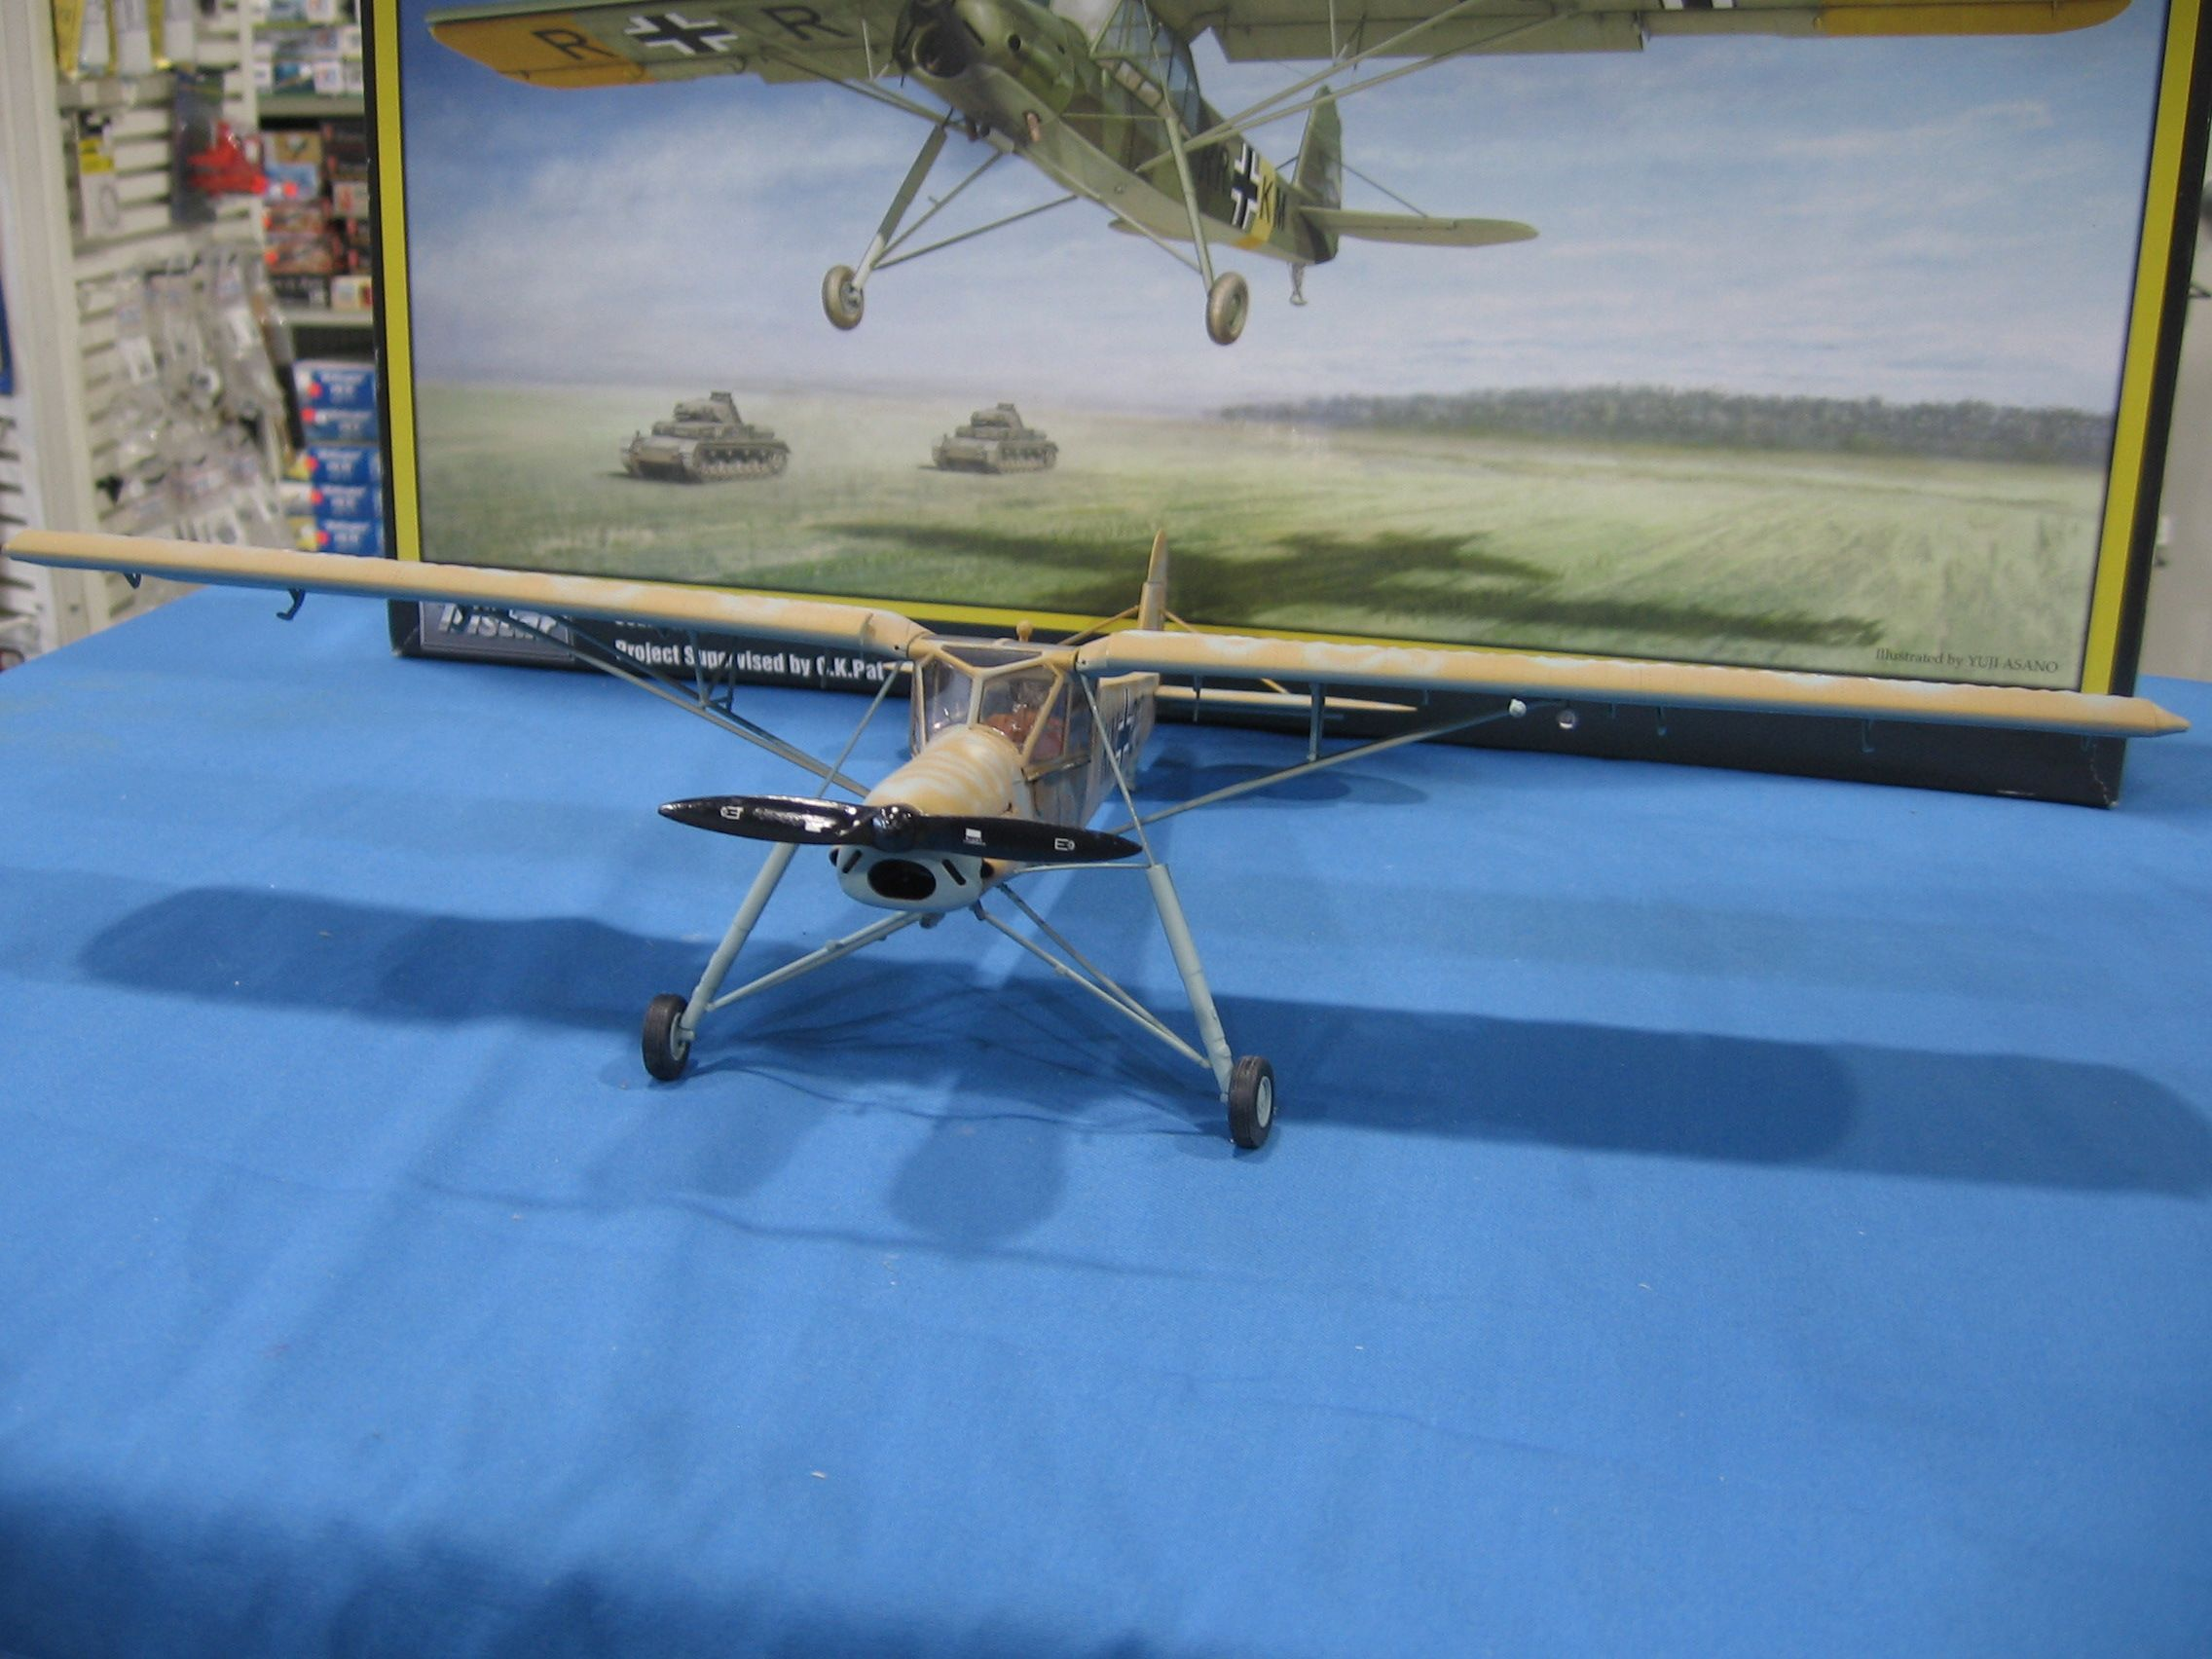 1/35 Tristar Fiesler Storch, a commission build for (the late) Bud Weiser.